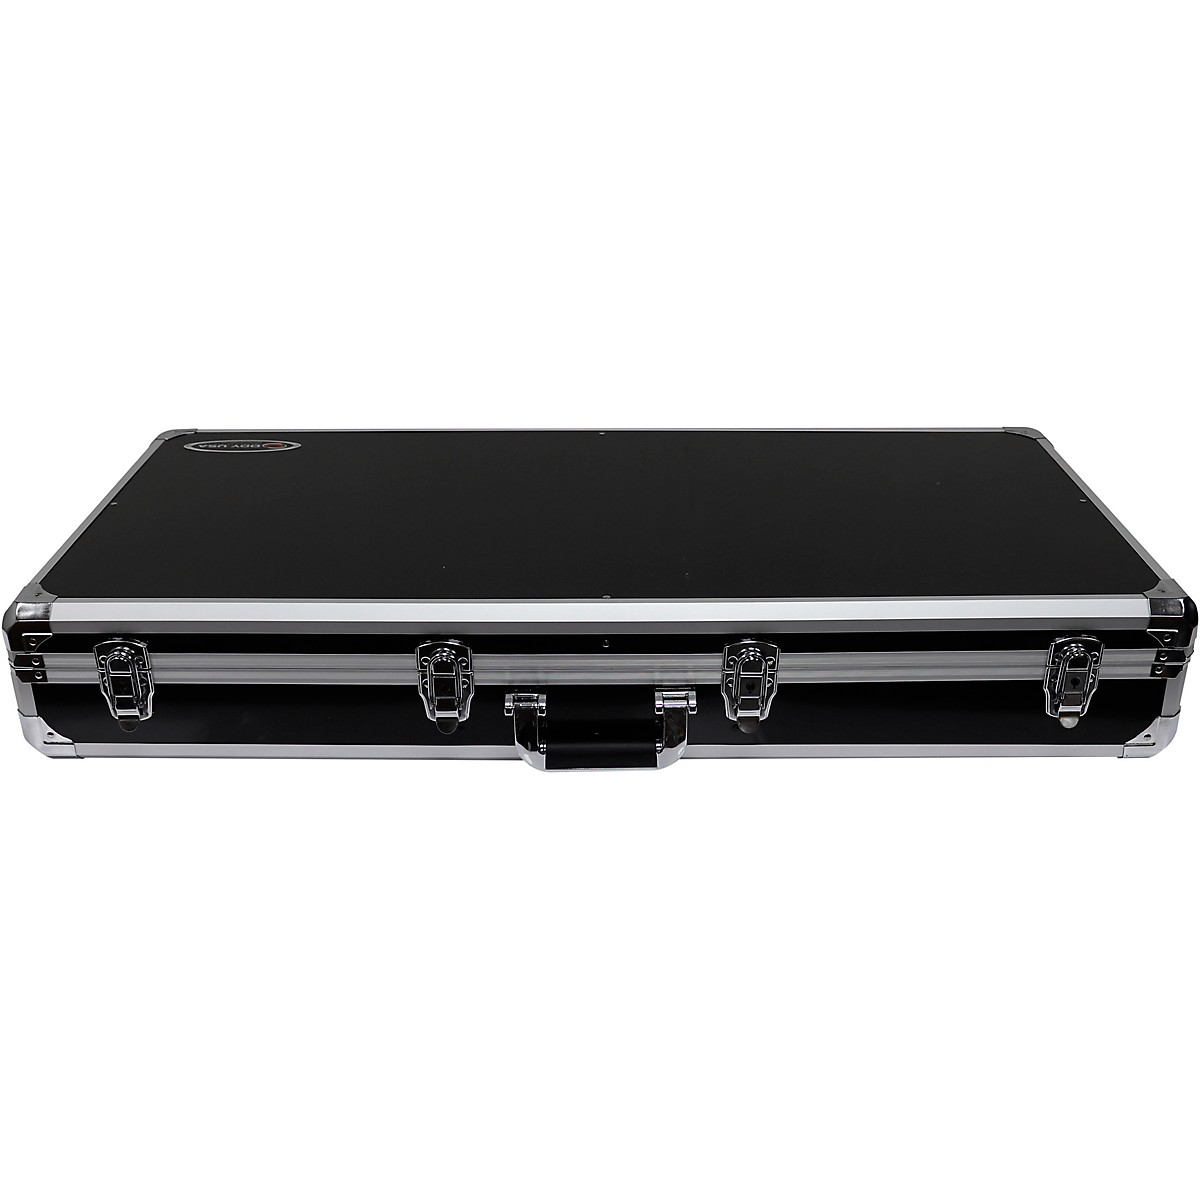 Odyssey K10PT01BLK Black DJ Coffin for Two Numark PT01 Scratch Turntables and A Compact 10